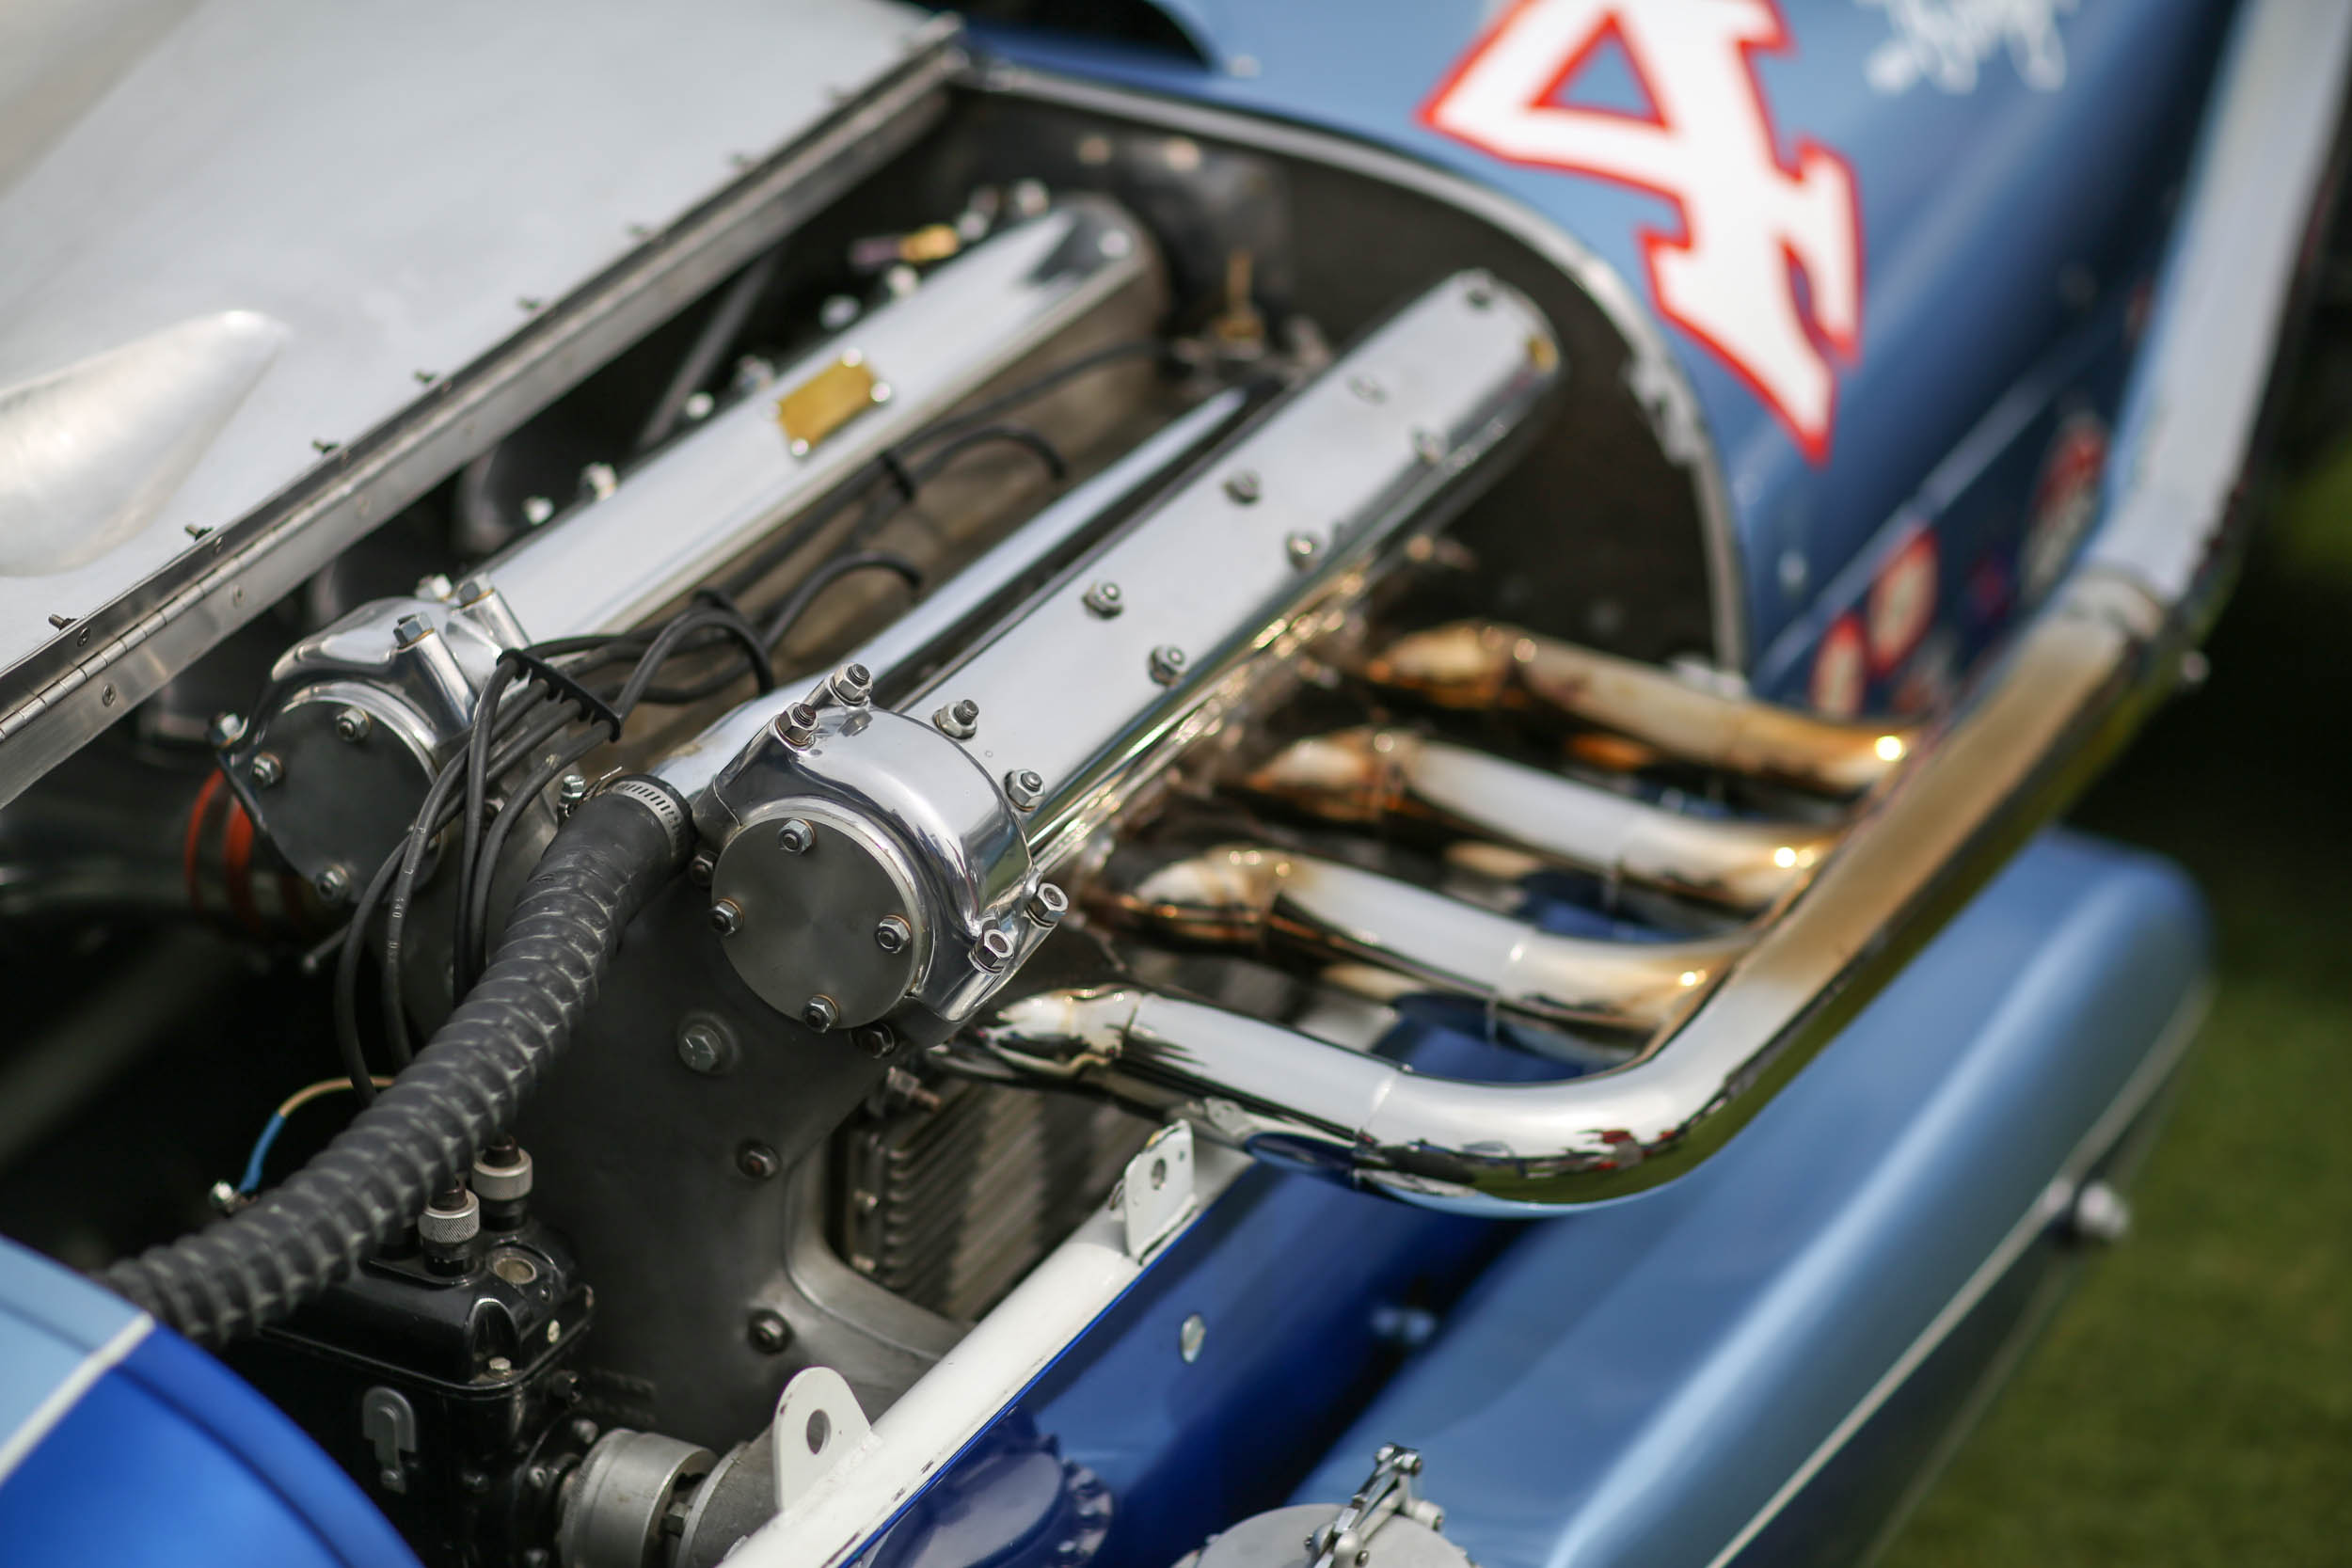 Powering this Watson Indy roadster to Indy 500 victory in 1960, this Offenhauser engine was set off to the left rather than the traditional mounting that canted them over. It allowed for more weight bias to the left side of the car – inboard on a counterclockwise oval track – and easier maintenance as well.